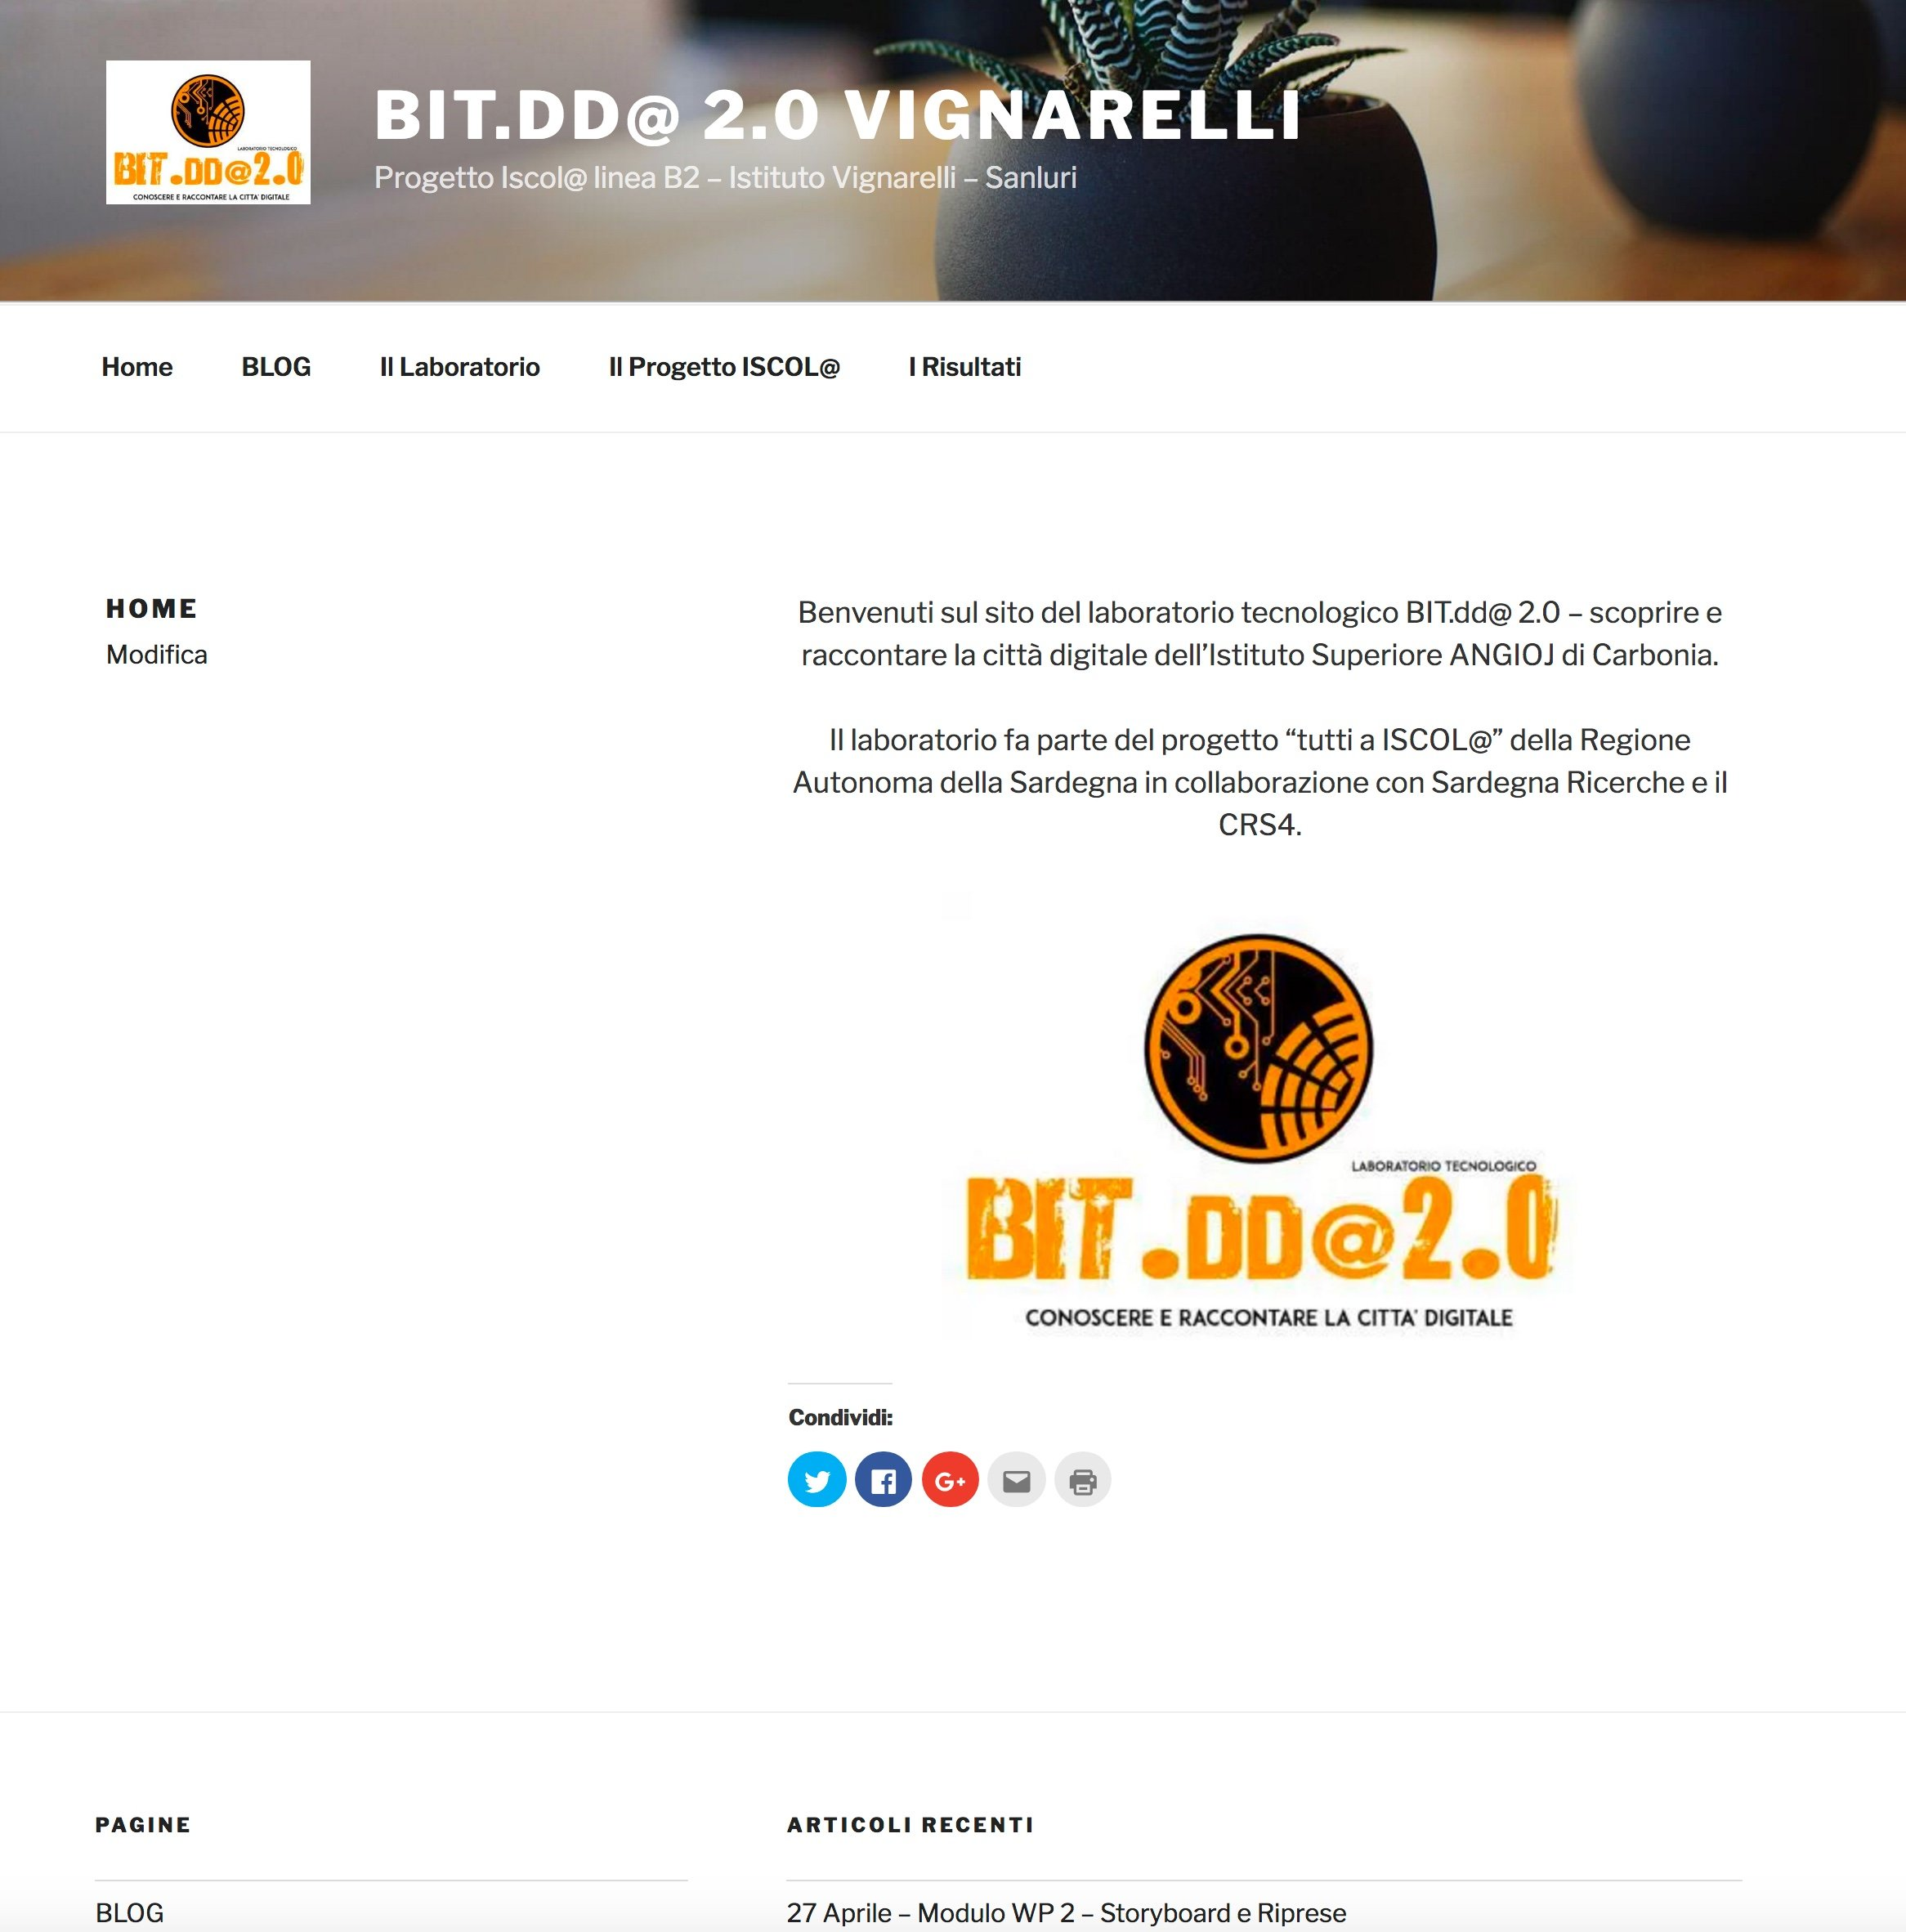 On line il sito del laboratorio iscol bitdd 2 0 presso for Istituto superiore